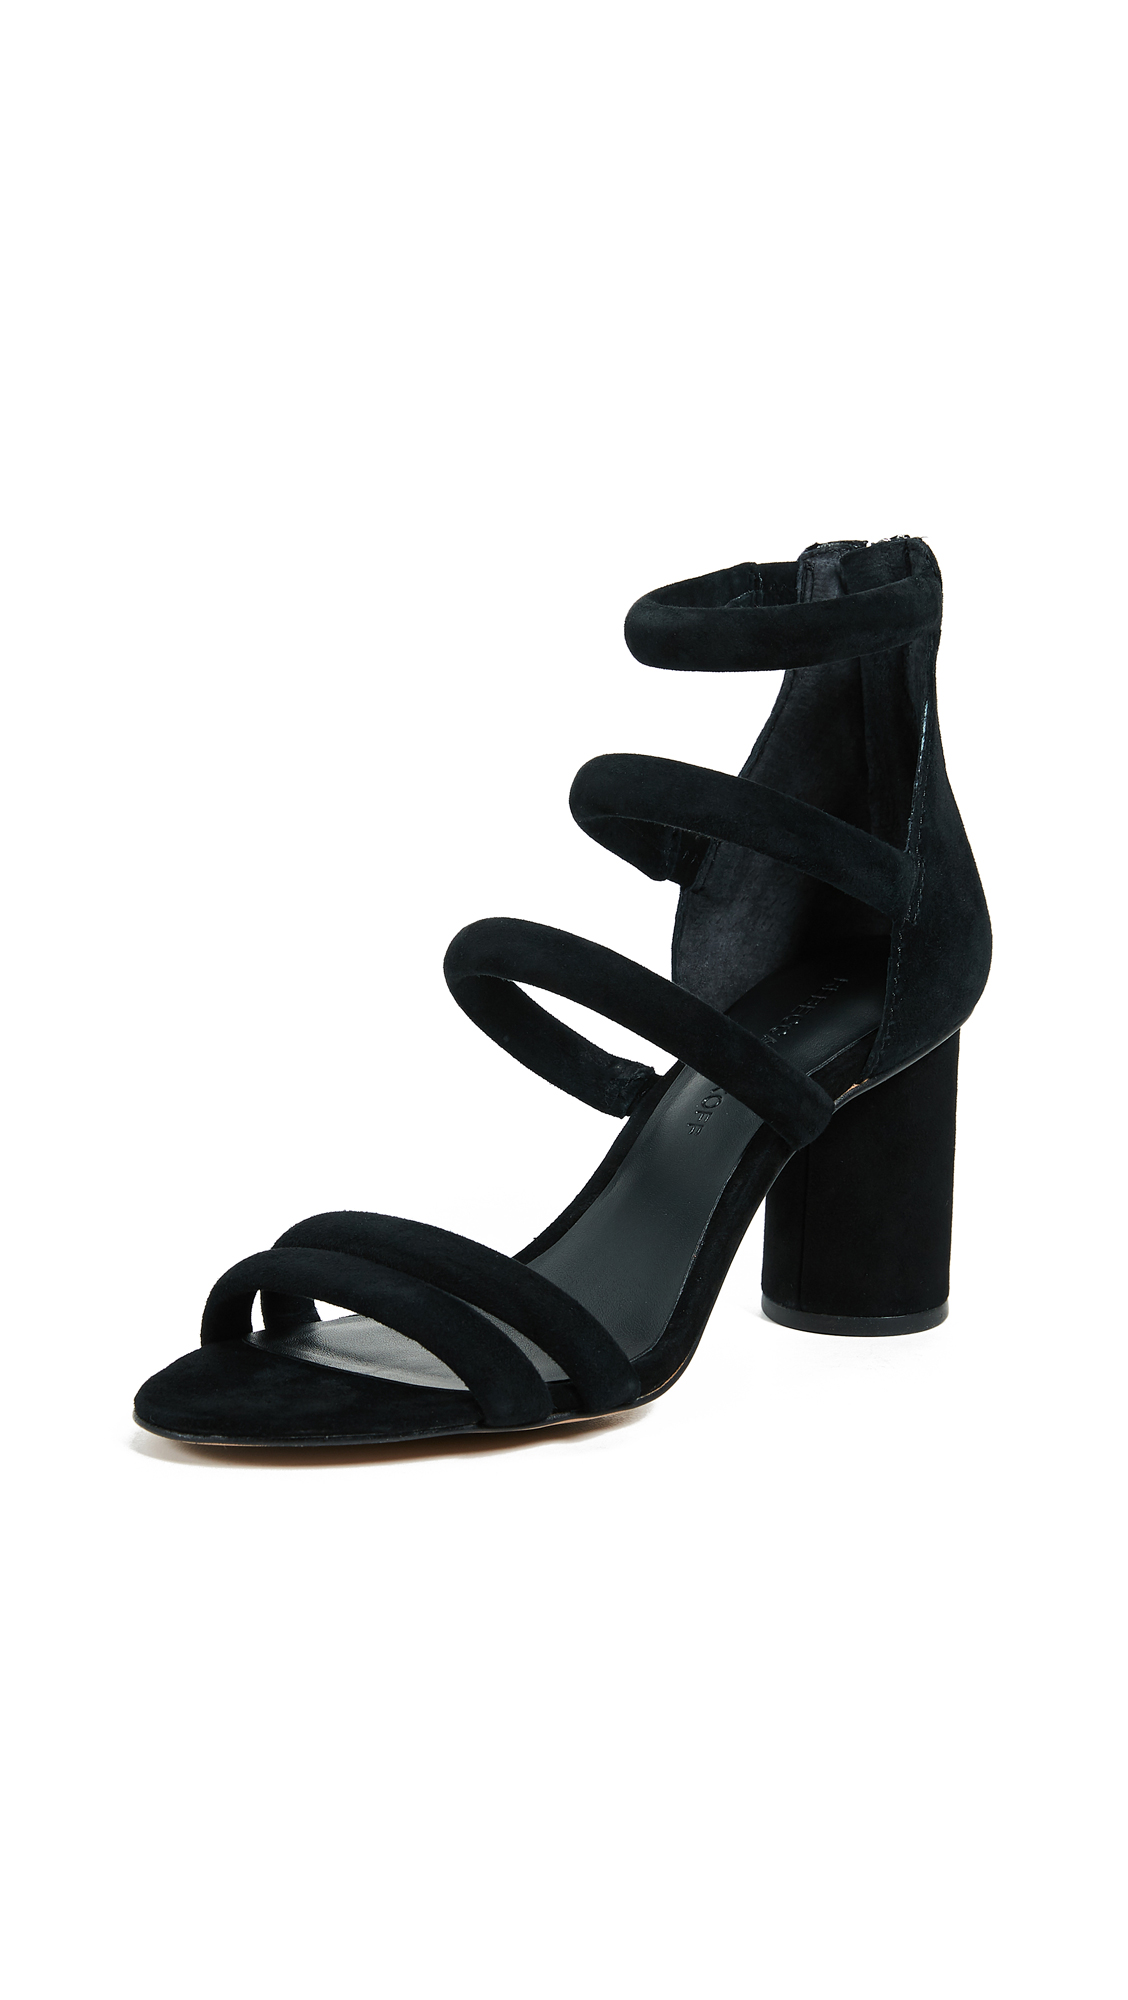 Rebecca Minkoff Andree Tubular Sandals - Black